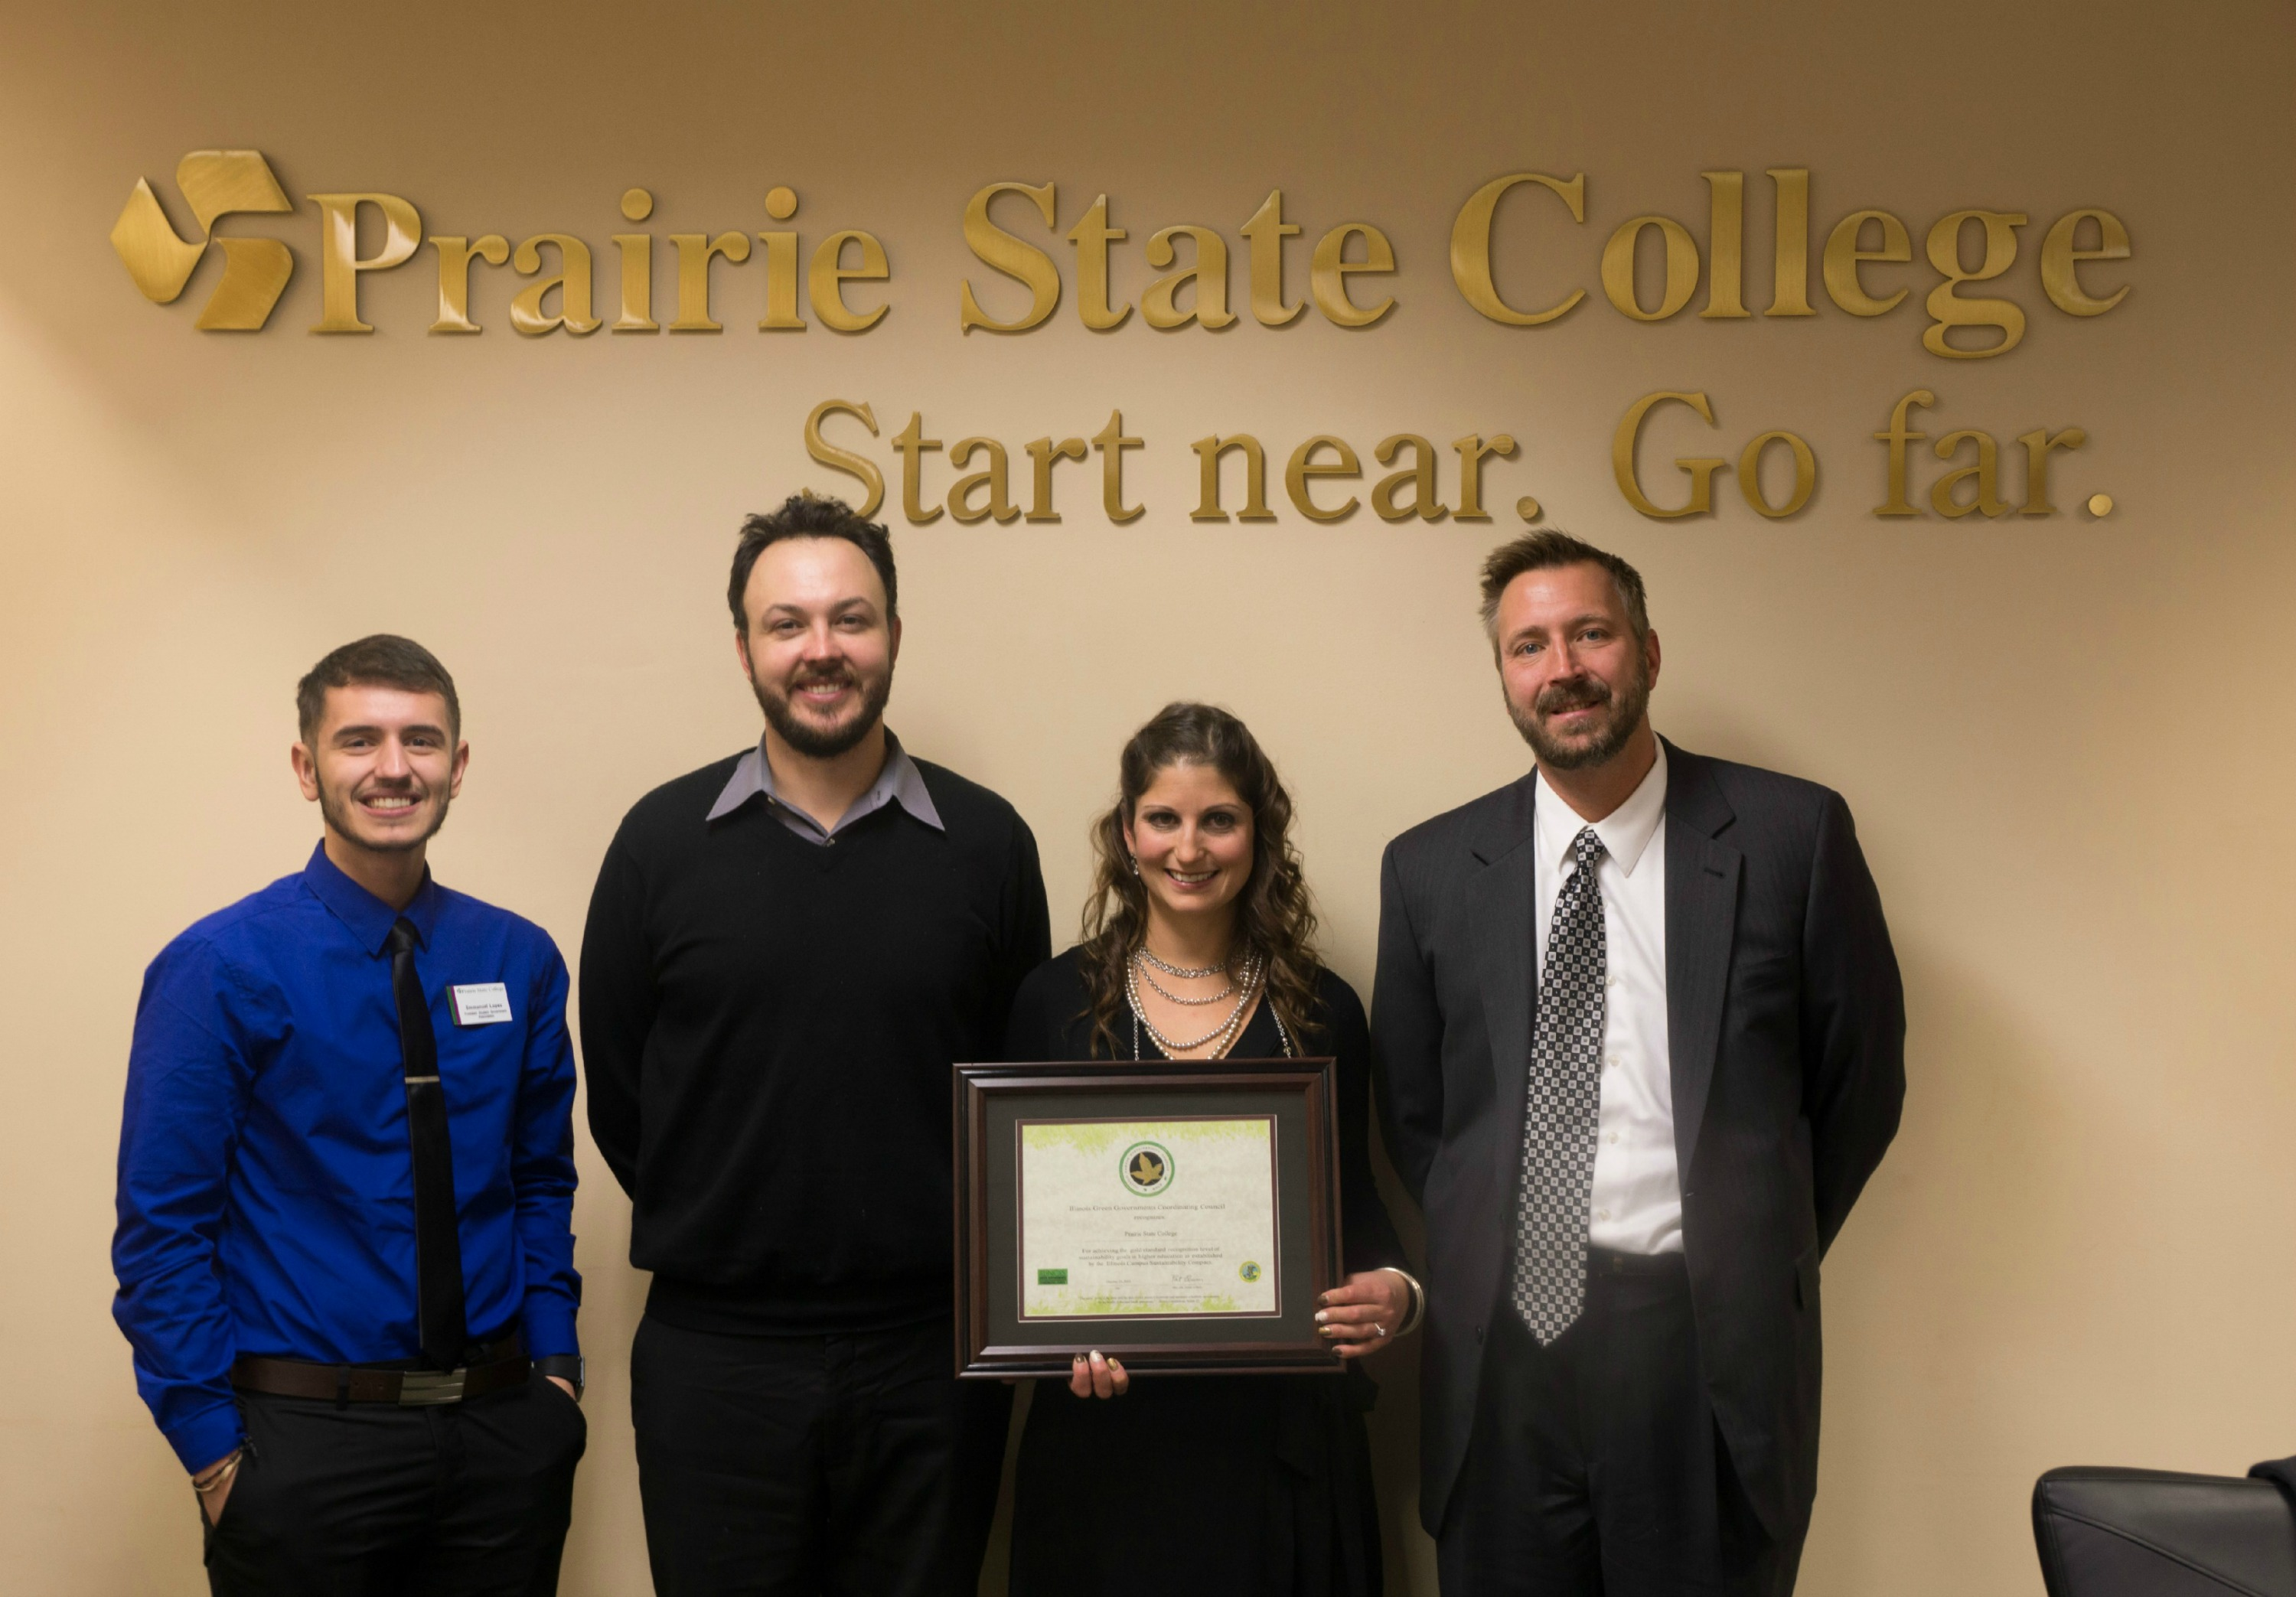 Prairie State College Recognized as Gold Level Compact School by Illinois Governor's Office for Sustainability Efforts